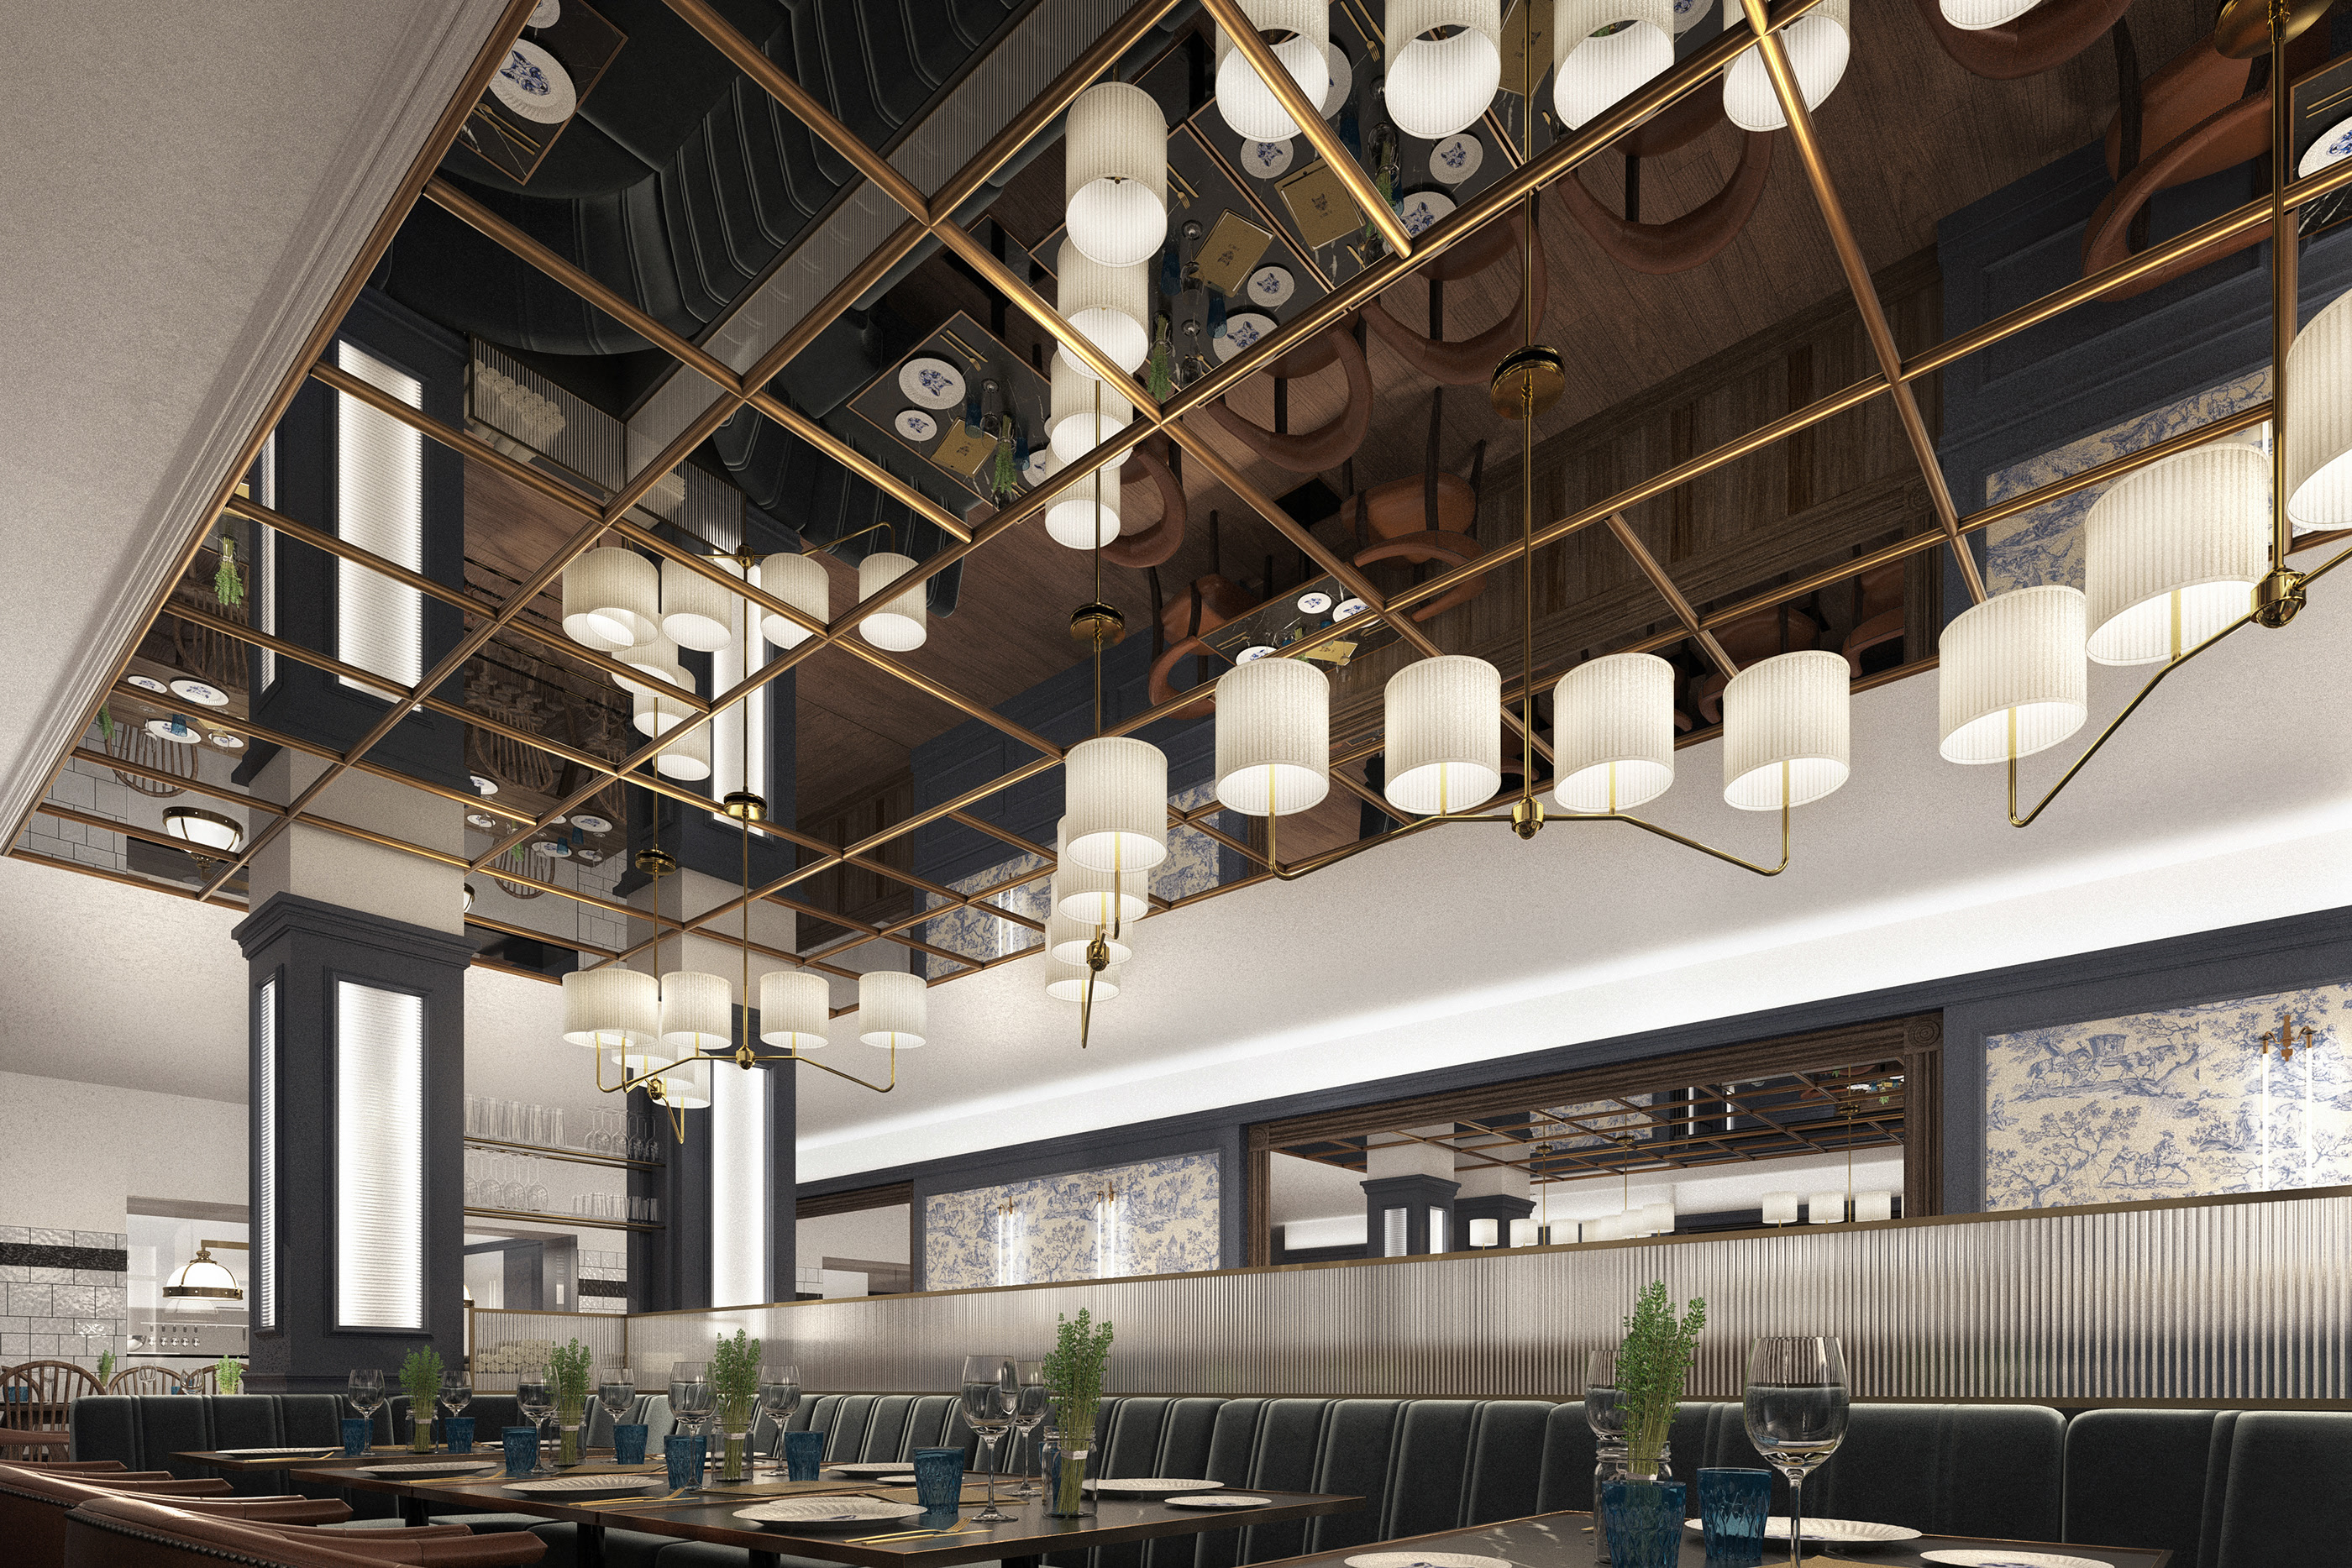 architectural render of hotel dining room